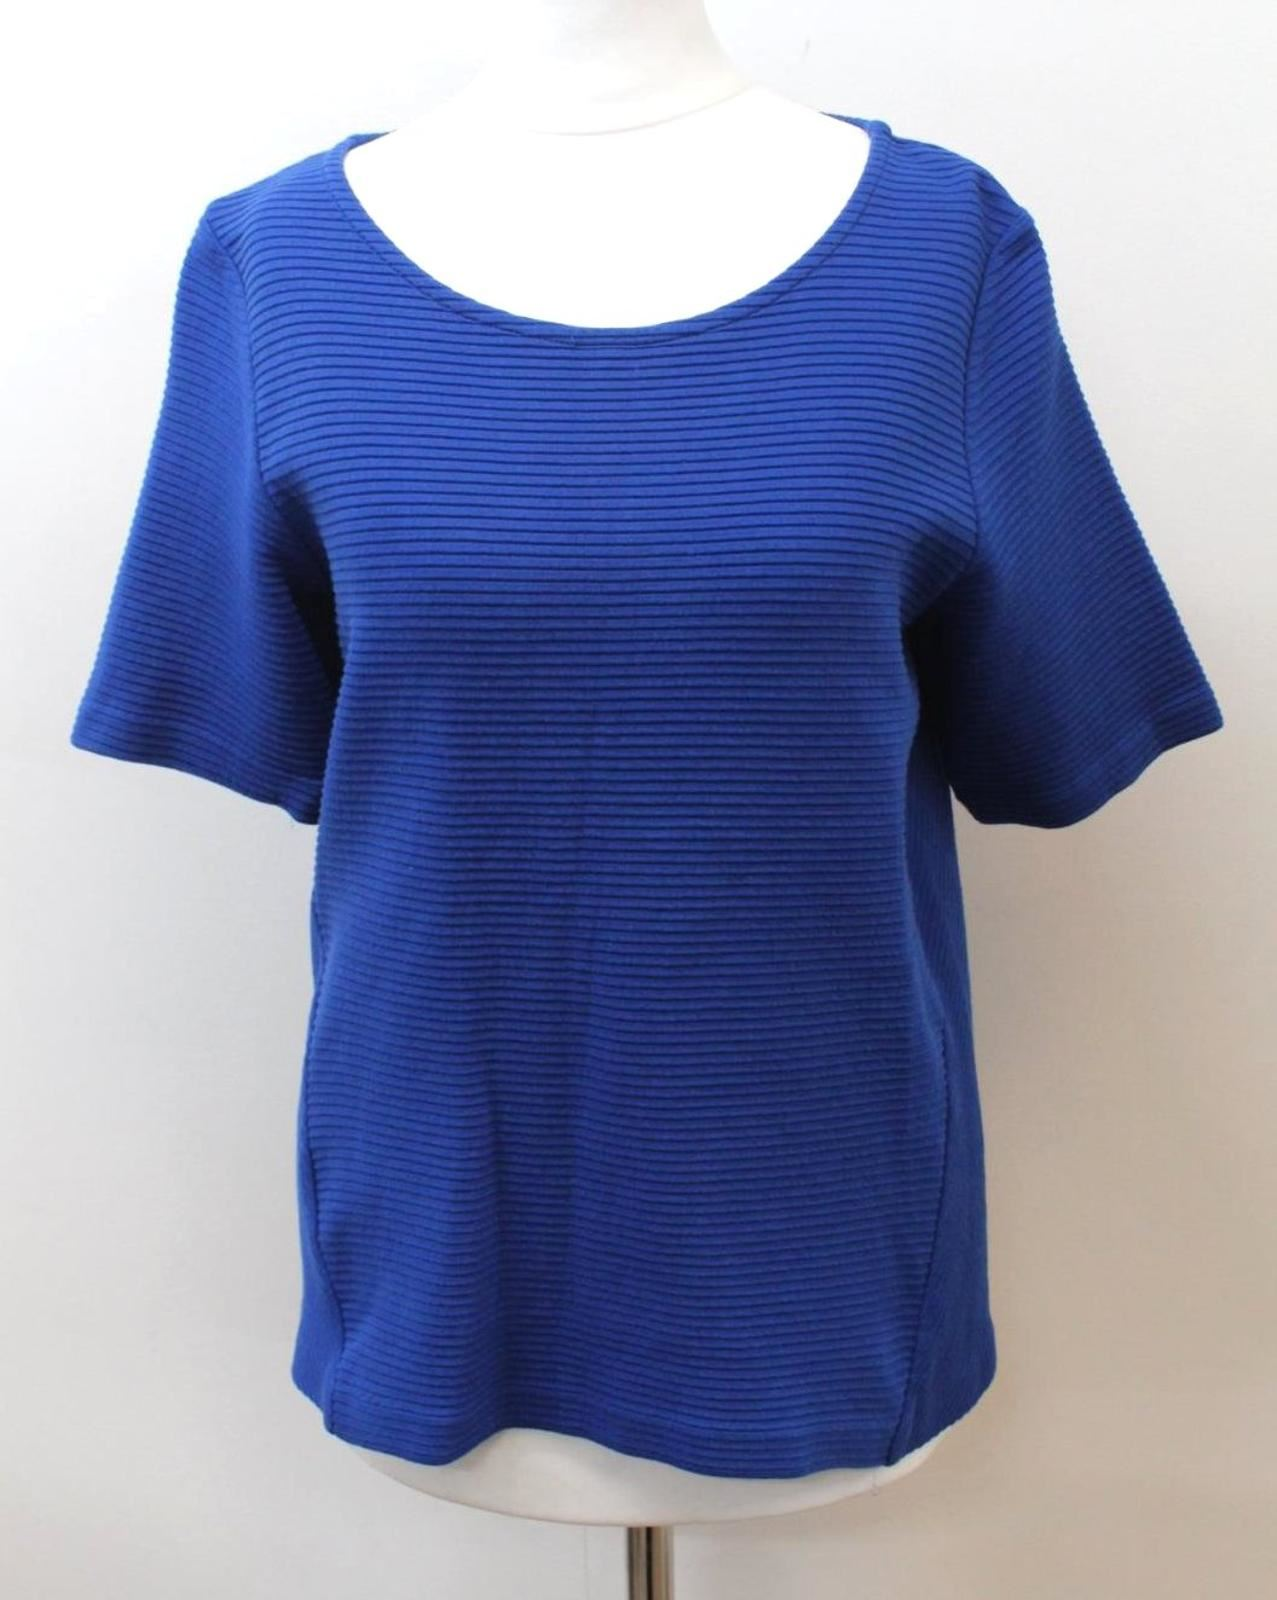 JAEGER-Ladies-Blue-Cotton-Blend-Short-Sleeve-Scoop-Neck-Ribbed-Top-Size-S